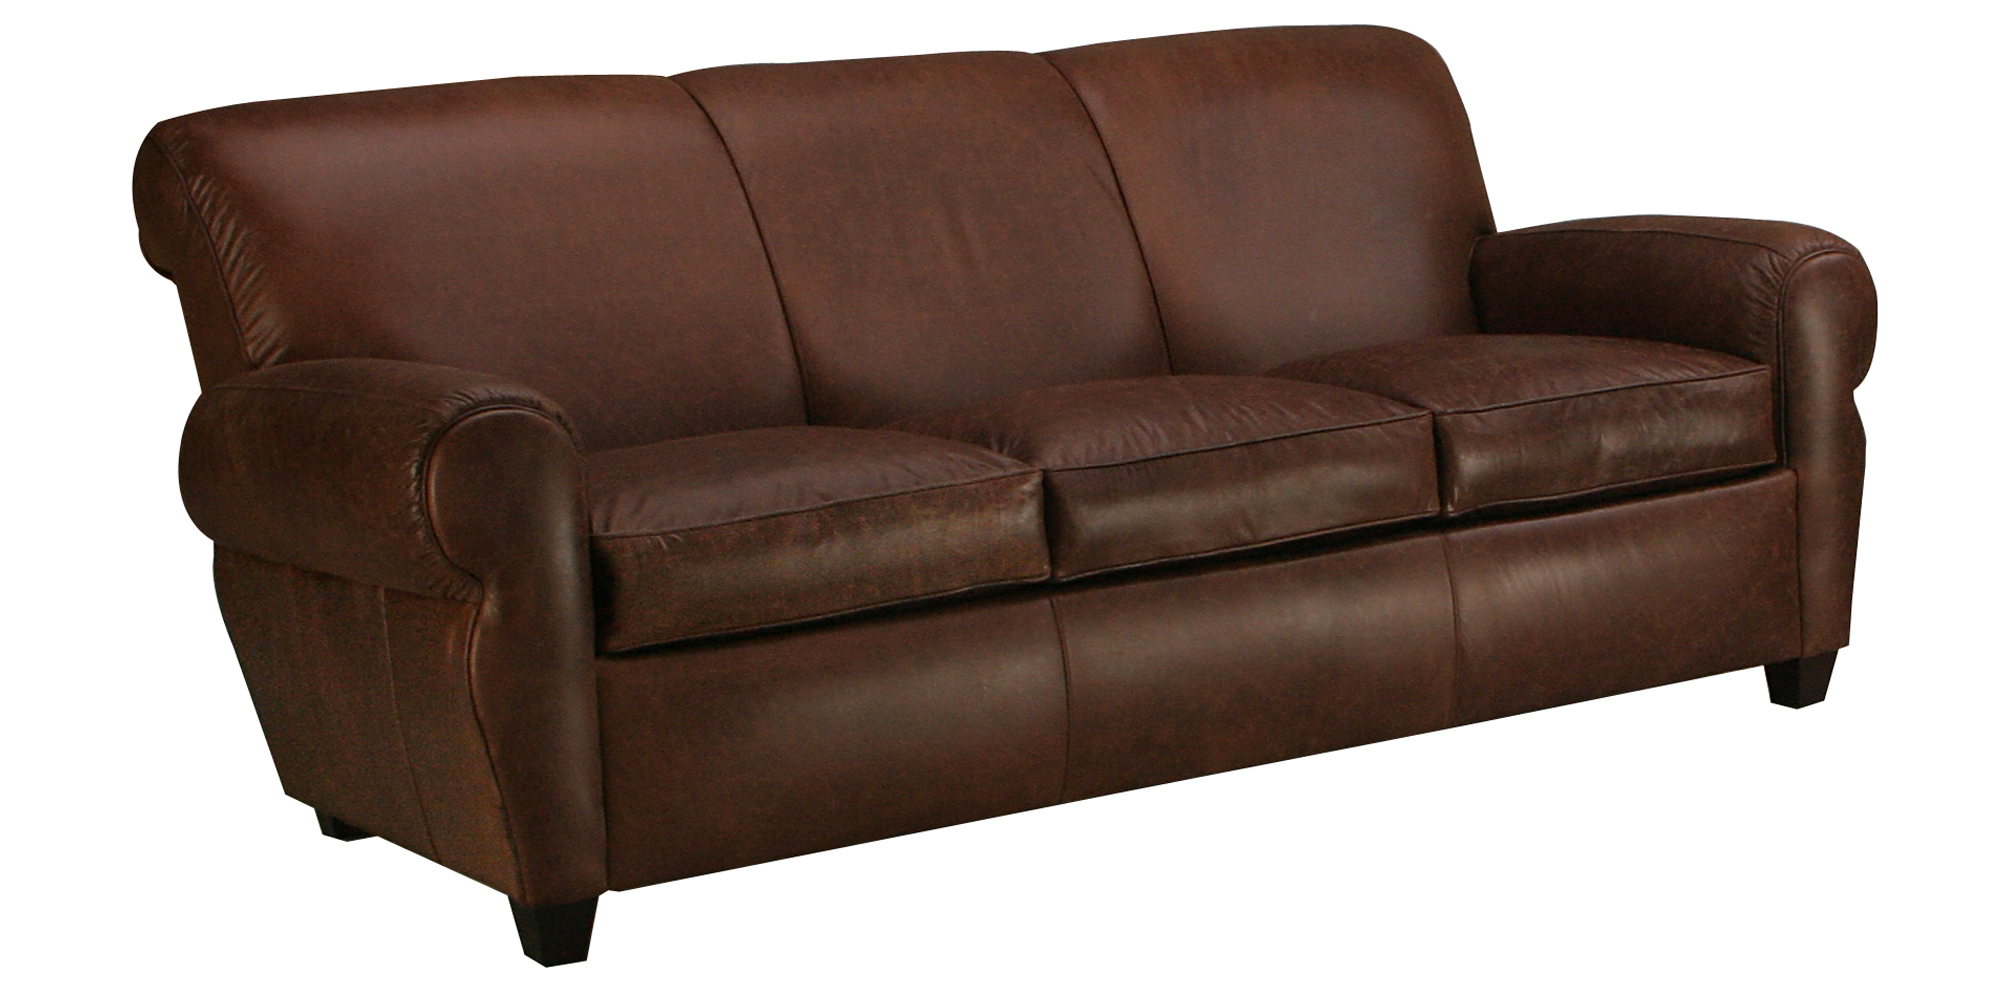 Vintage Leather Furniture Home Design Ideas And Pictures ~ Leather Sofa Vintage Style